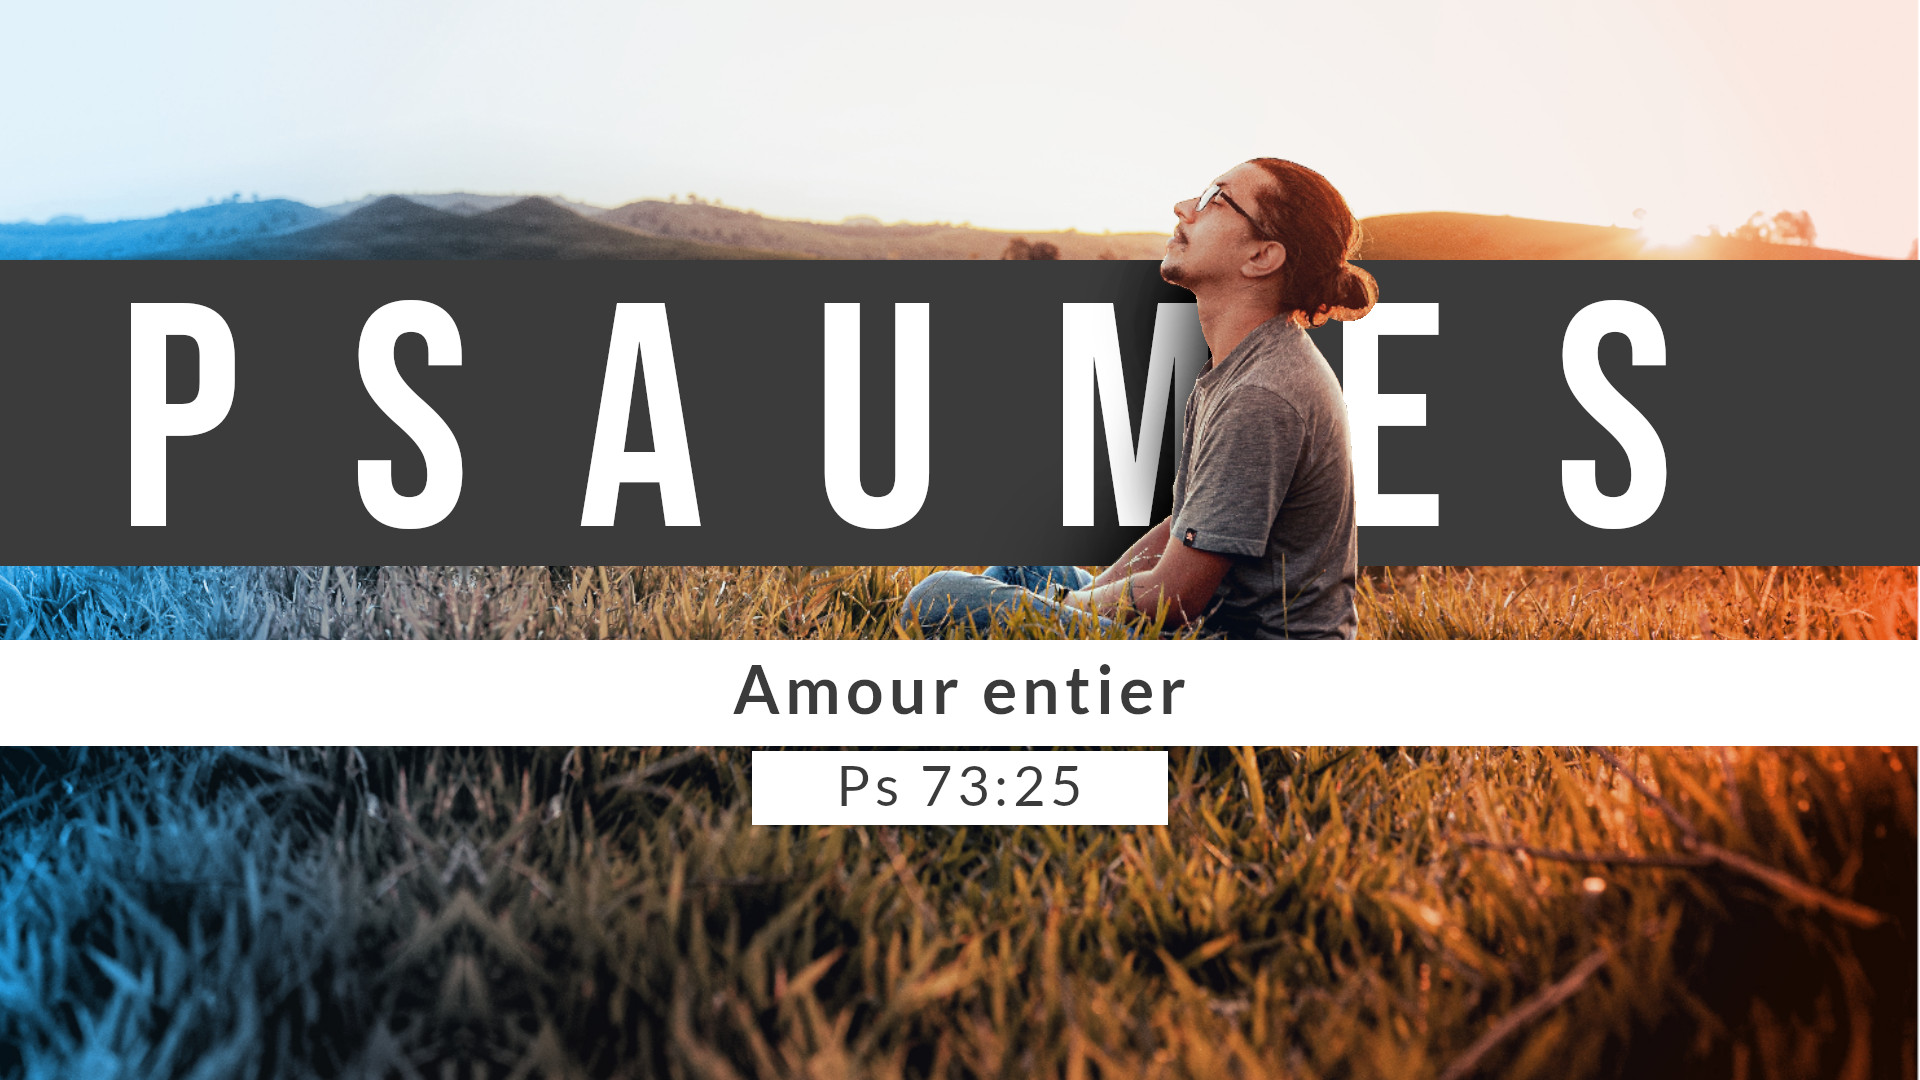 Amour entier